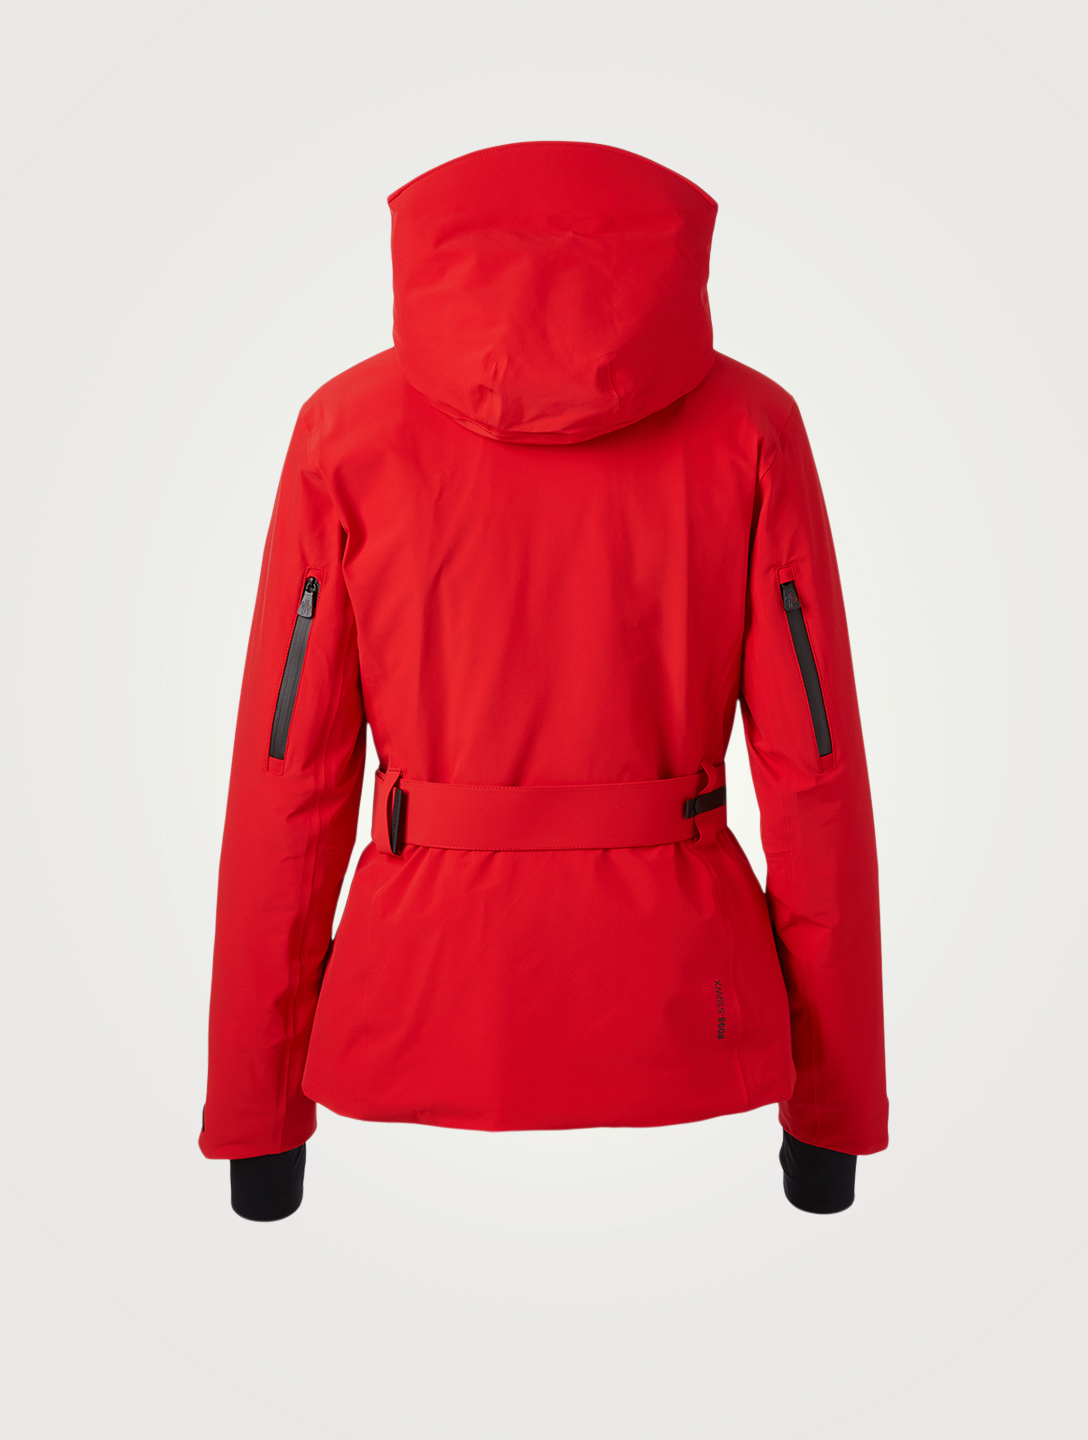 MONCLER GRENOBLE Surier Down Jacket With Belt Women's Red